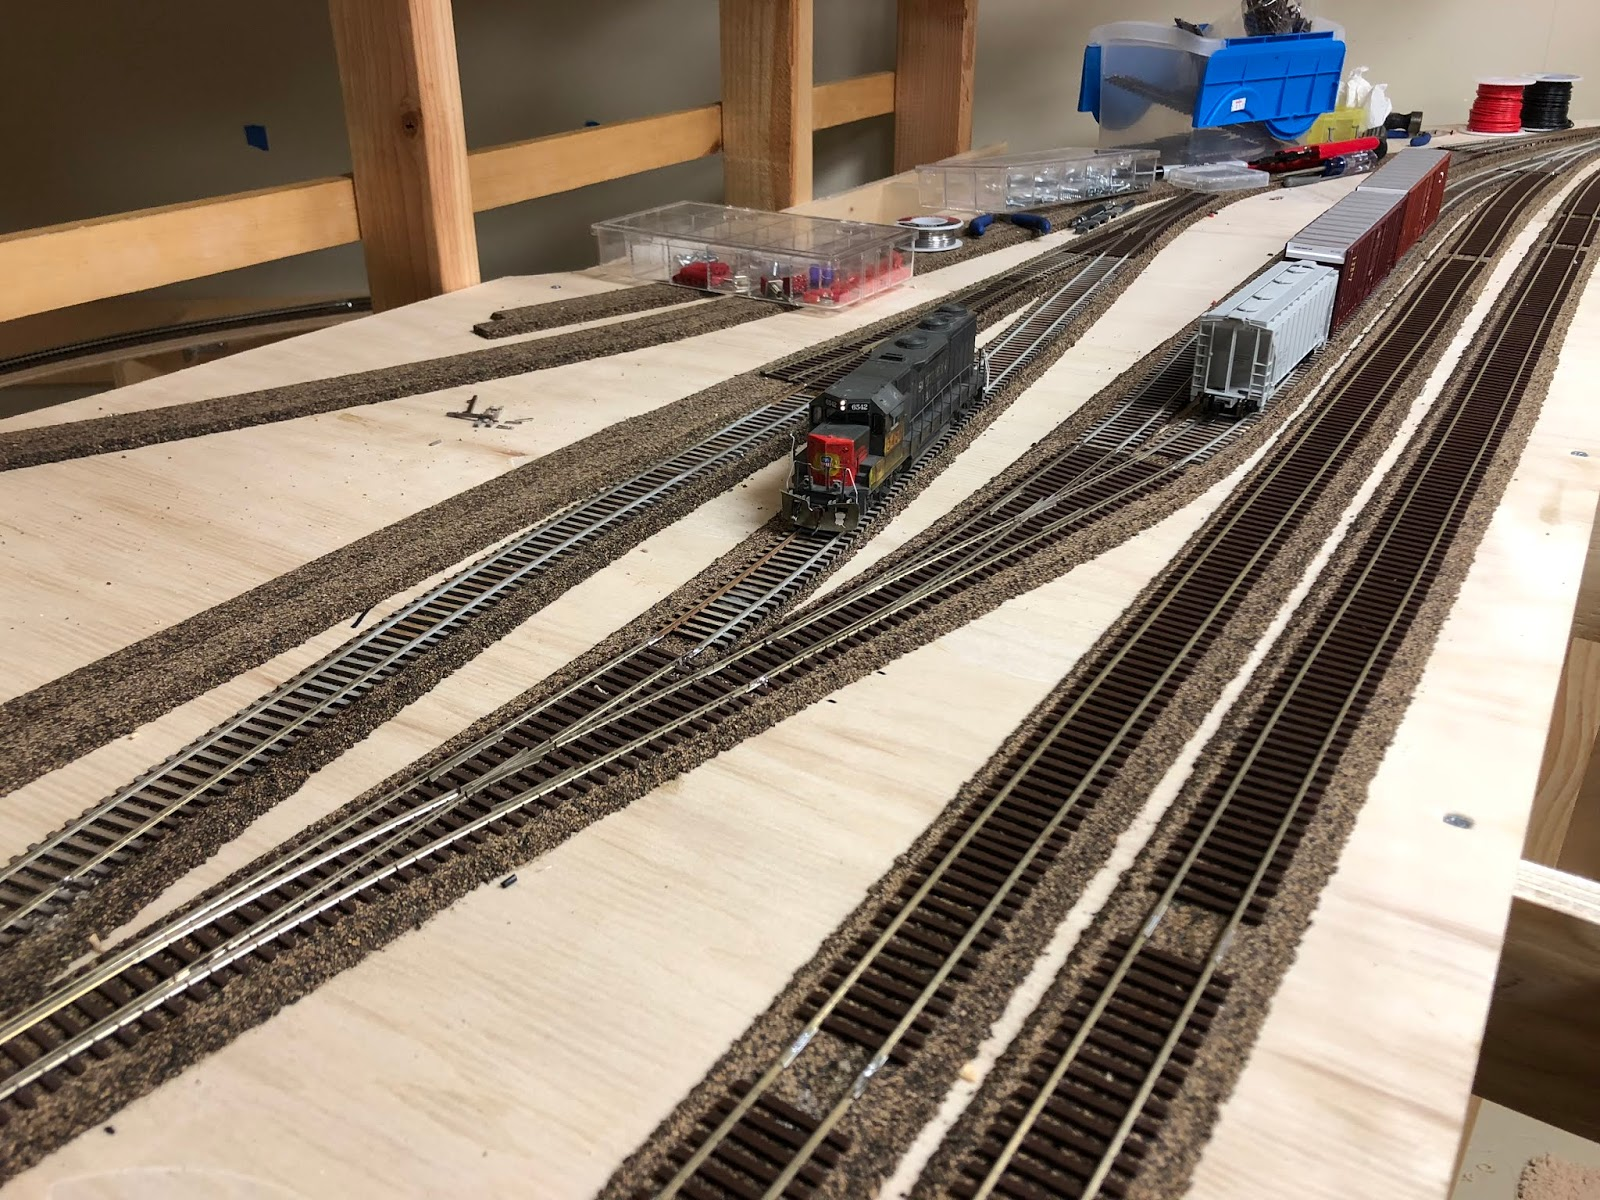 small resolution of as i left it in the winter construction in oakridge was in progress after initial construction efforts of benchwork track and wiring